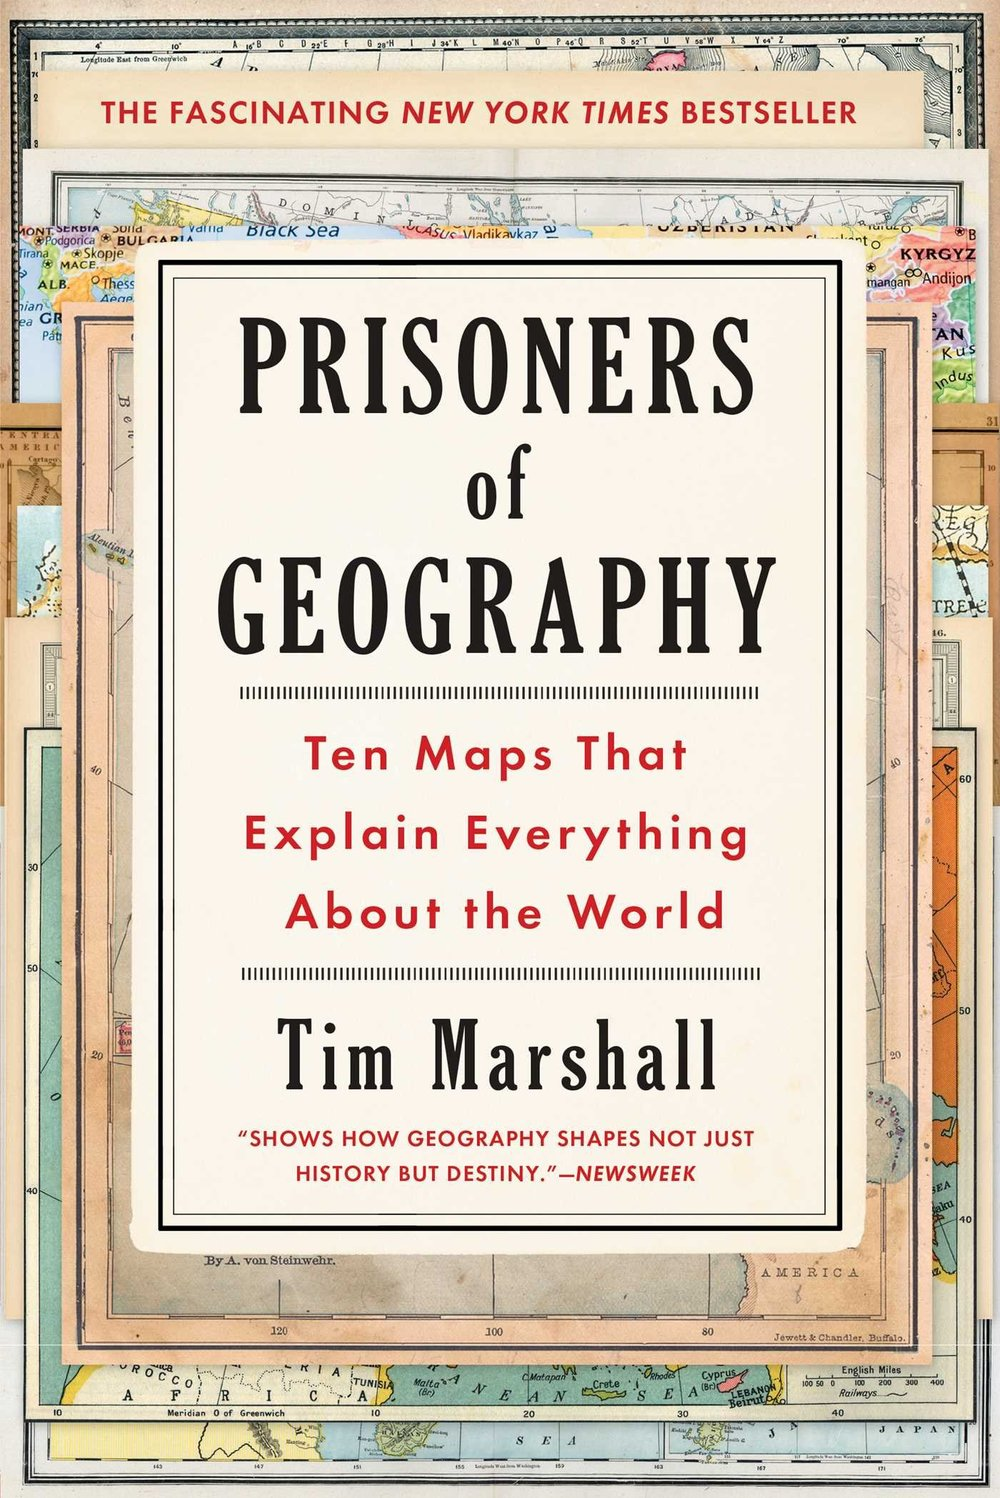 marshall_prisoners-of-geography.jpg